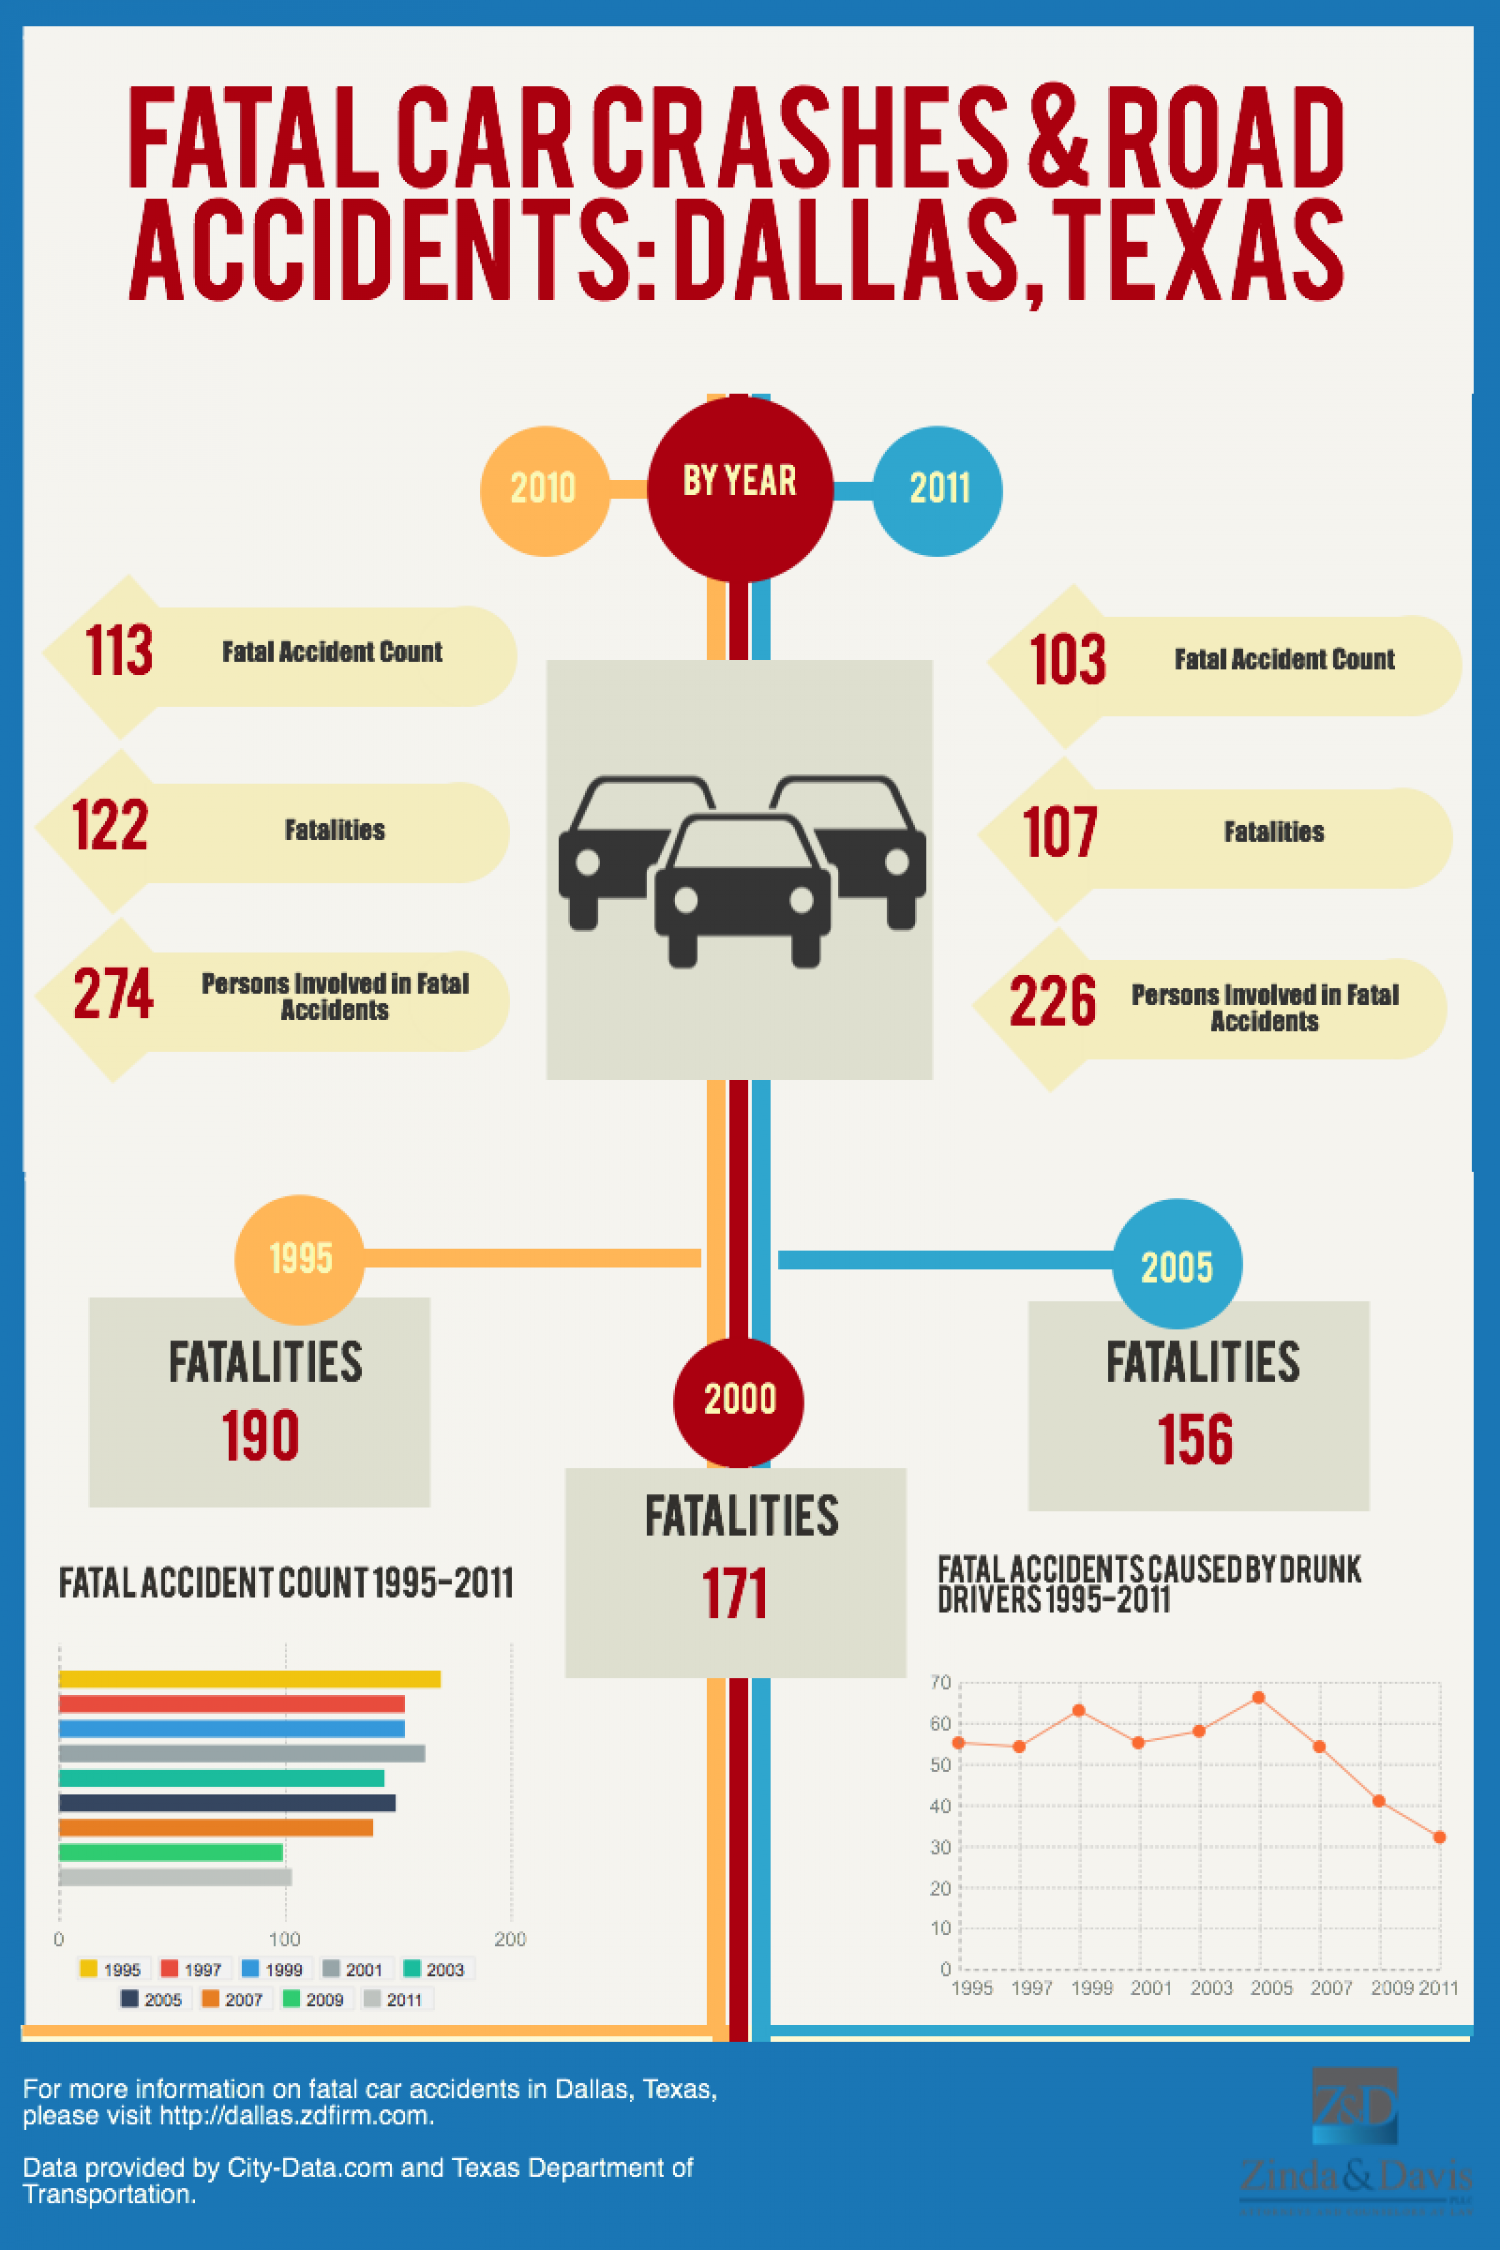 Fatal Car Crashes & Road Accidents: Dallas, Texas Infographic